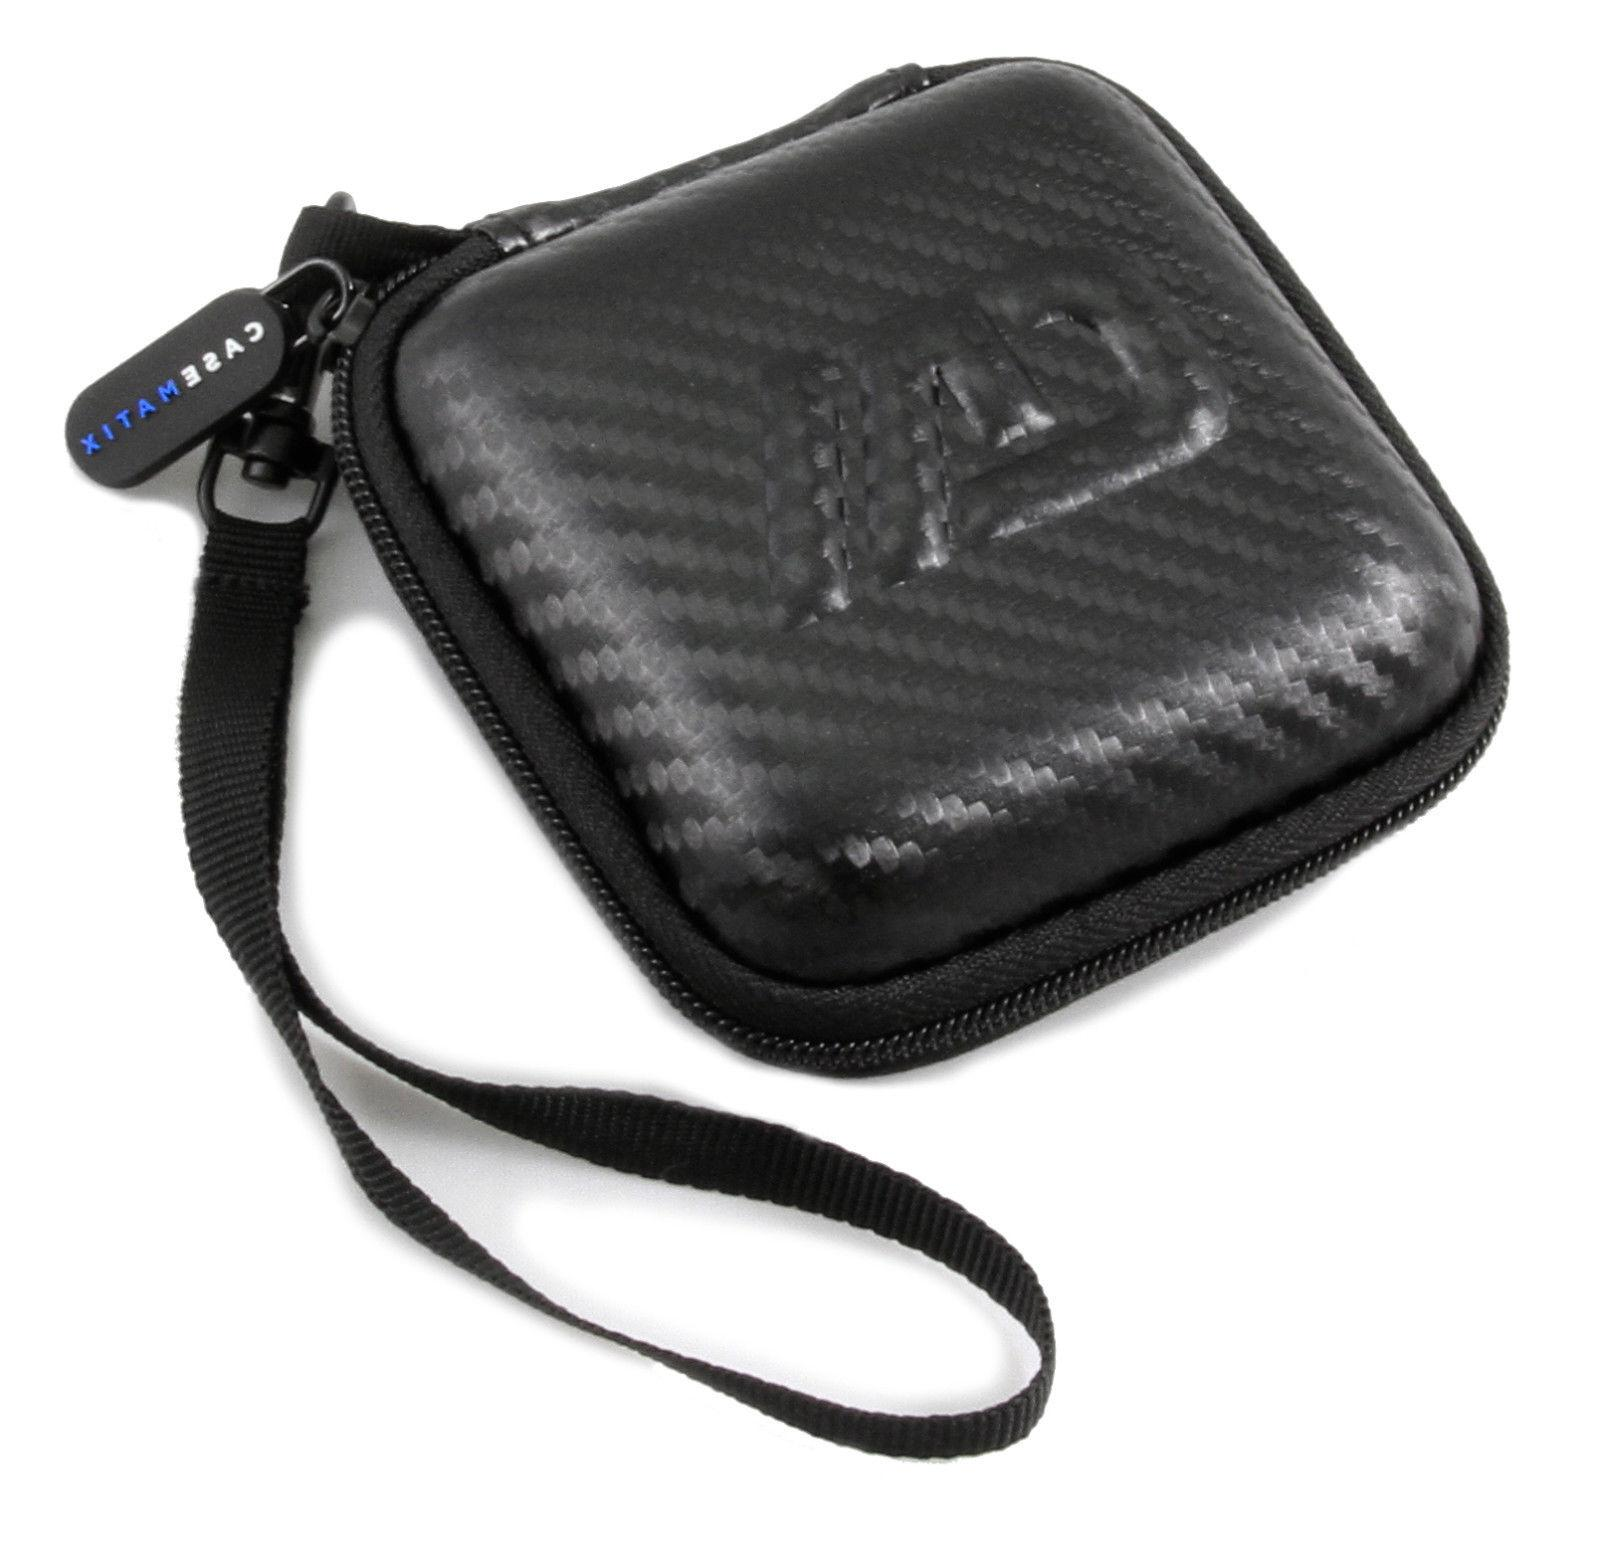 GPS Case For Whistle 3 Tracker Dog Clip